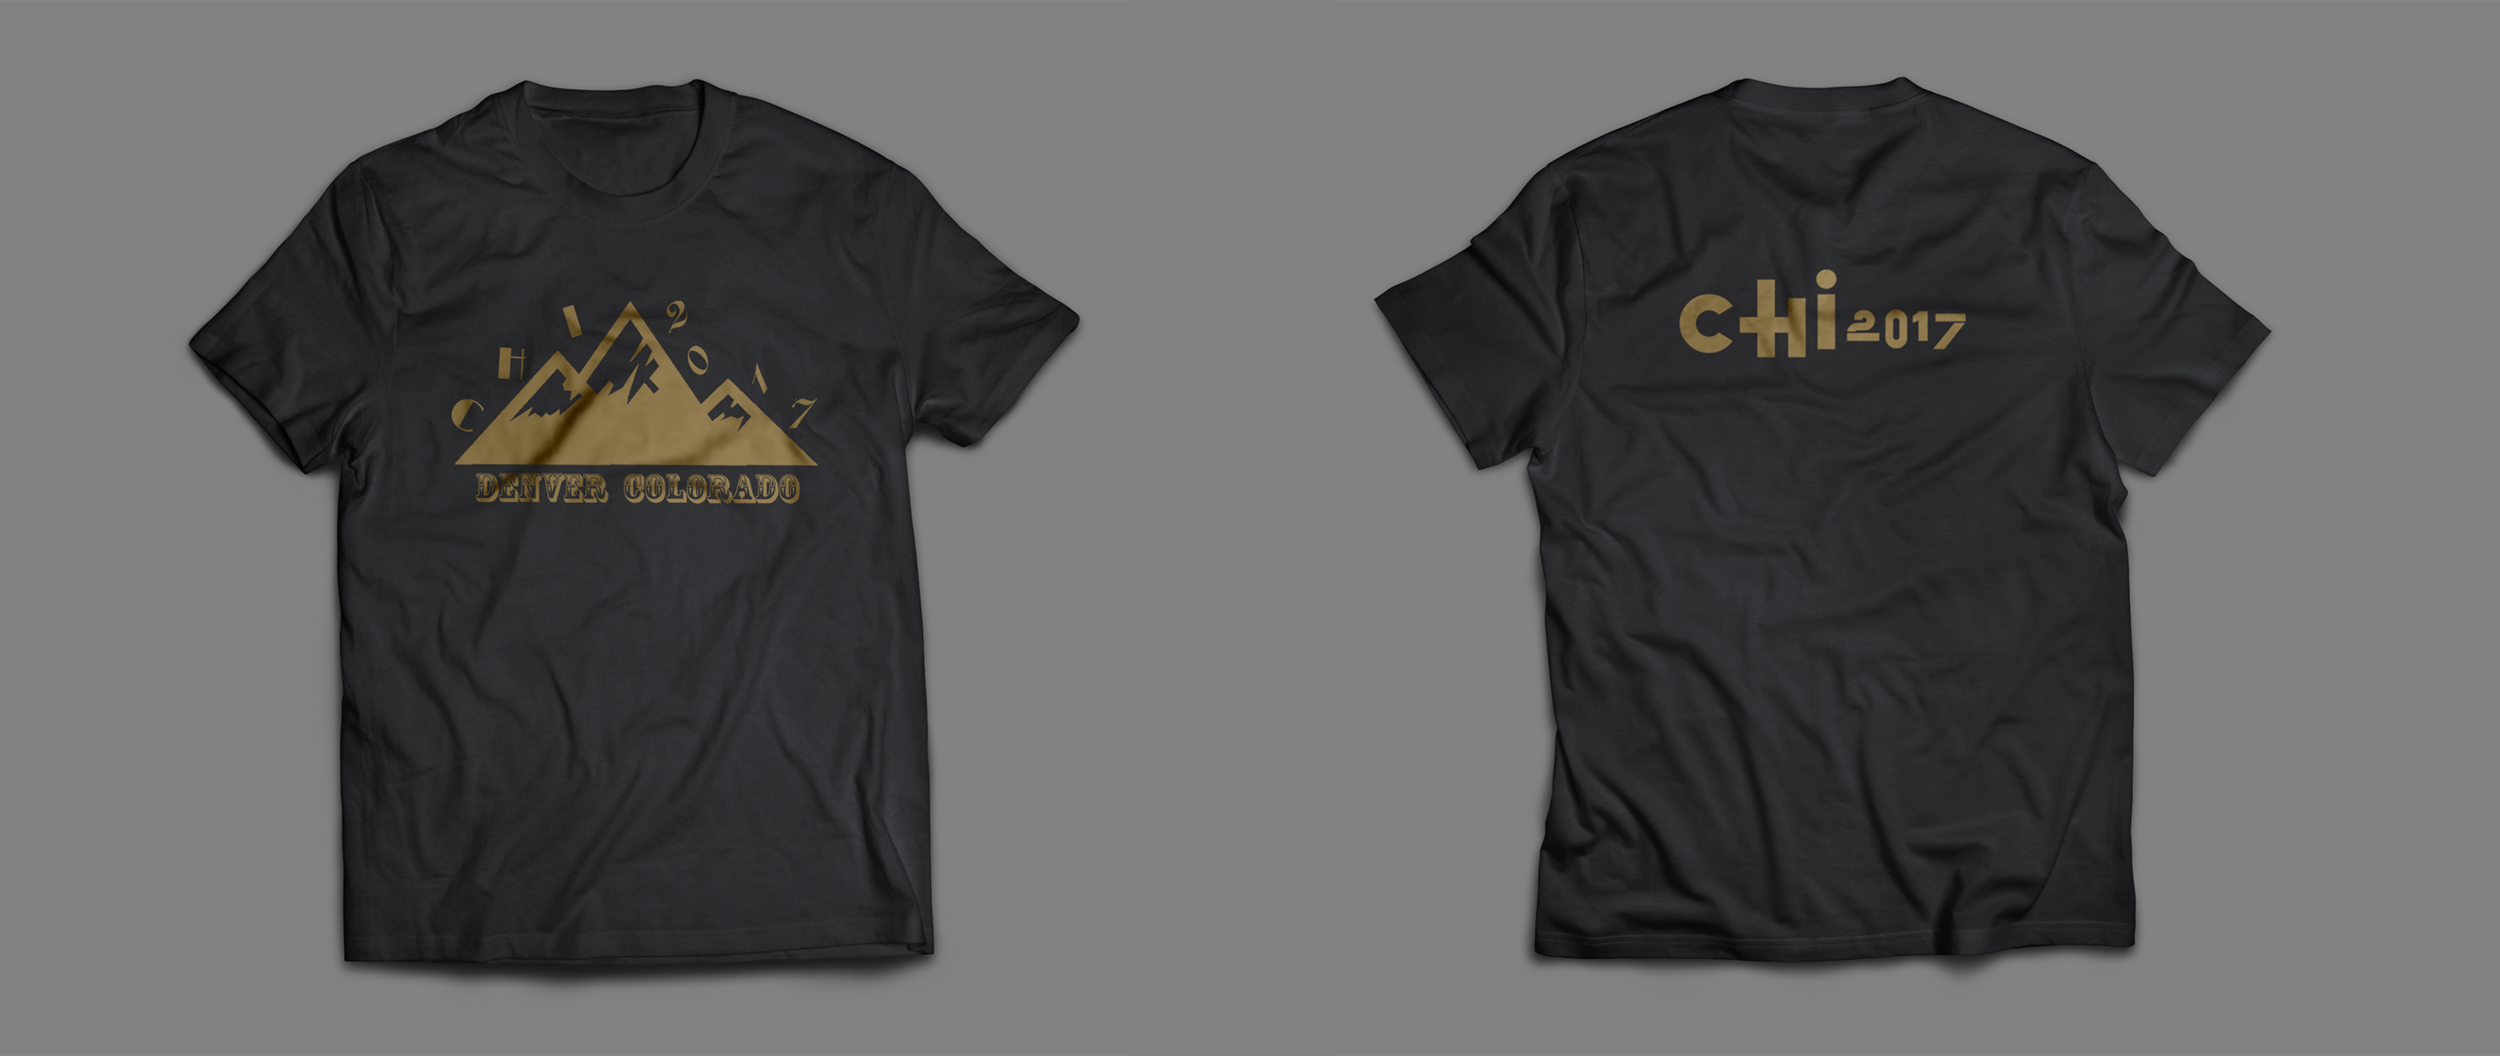 T Shirt Design - • Goal: T-shirt design for CHI 2017, Denver, CO• Outcome: Golden-Black color schema mapping with CU Boulder with the mountain indicating feature of Colorado